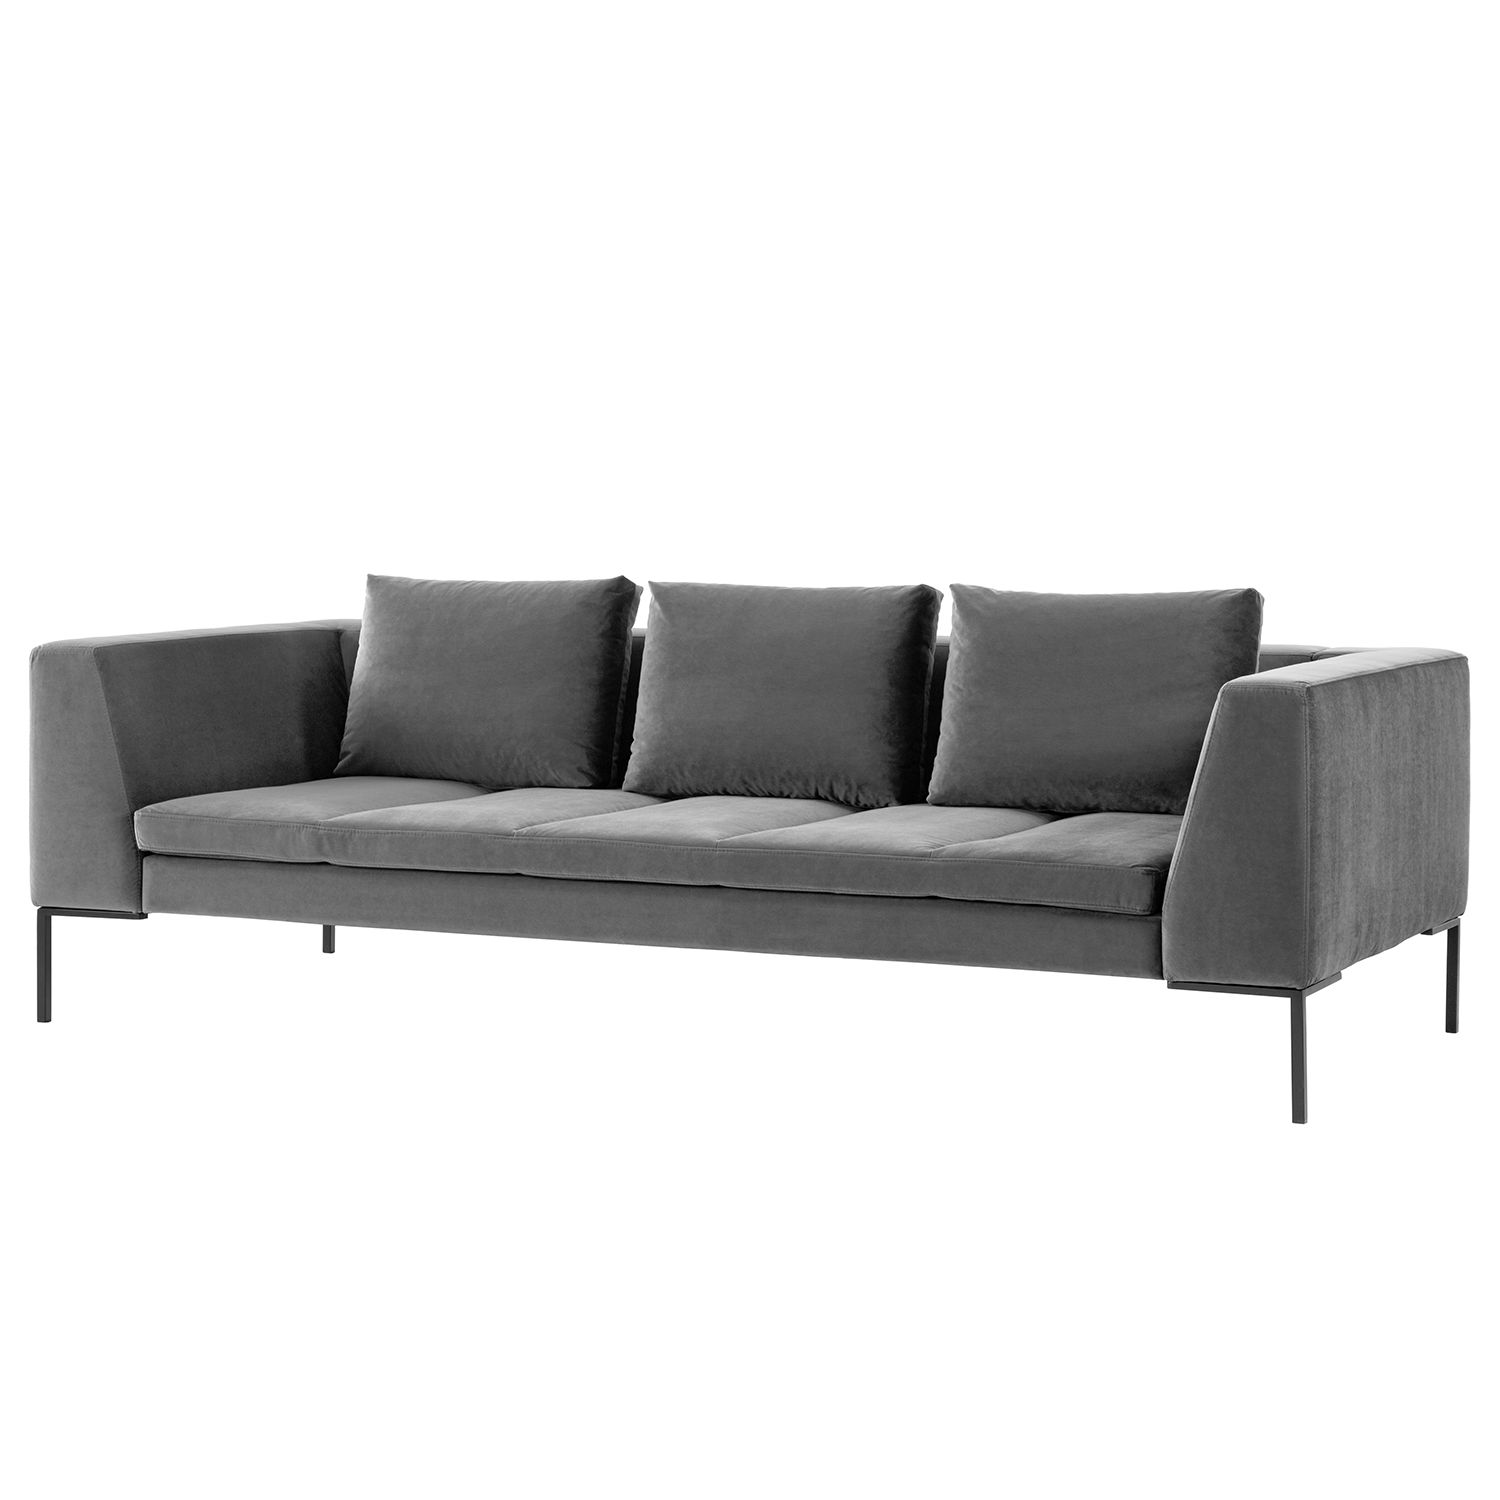 sofa madison 3 sitzer samt stoff shyla grau studio. Black Bedroom Furniture Sets. Home Design Ideas